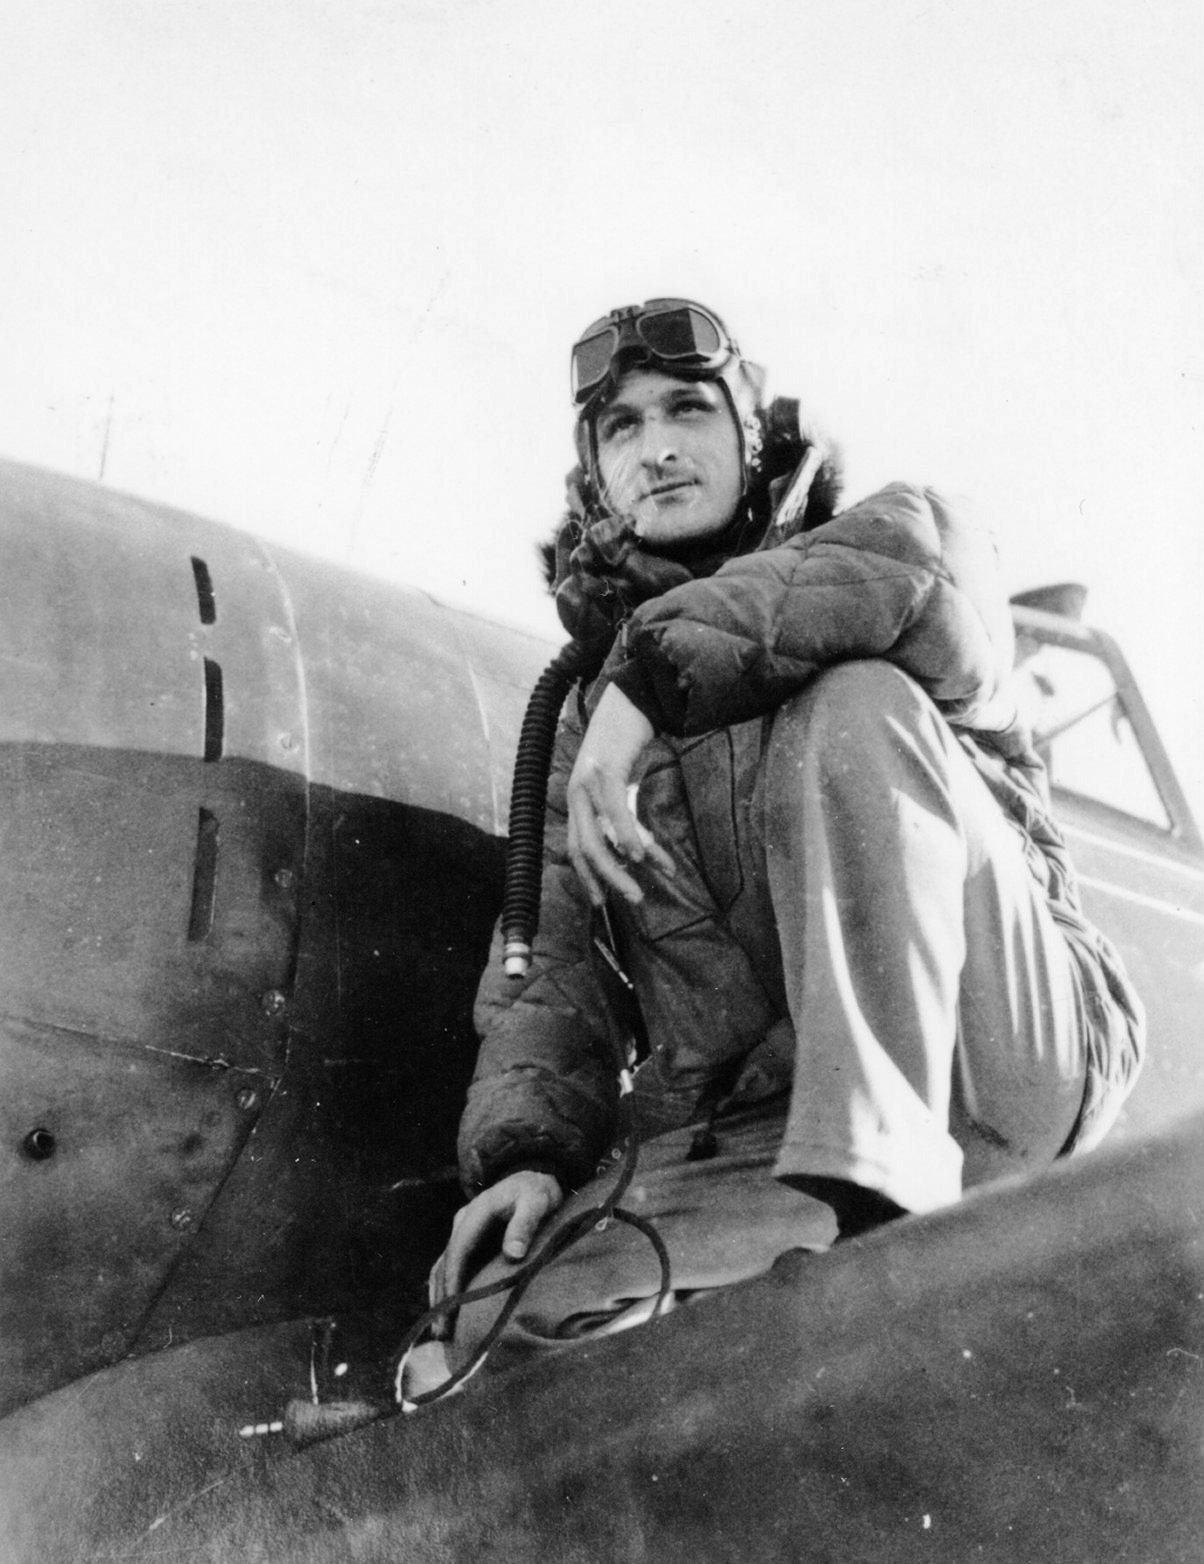 On August 16, 1944, Col. John B. Murphy of the 370th FS/359th FG observed an Me 163 Komet setting up an attack on a B-17 straggler. Col. Murphy dove on the rocket fighter, which broke off its attack, and sent it down in flames after a few well-aimed bursts. This was the second Me 163 to fall to Allied guns and Col Murphy was awarded his fifth Distinguished Flying Cross. (photo via Janet Fogg- 359th FG Association)